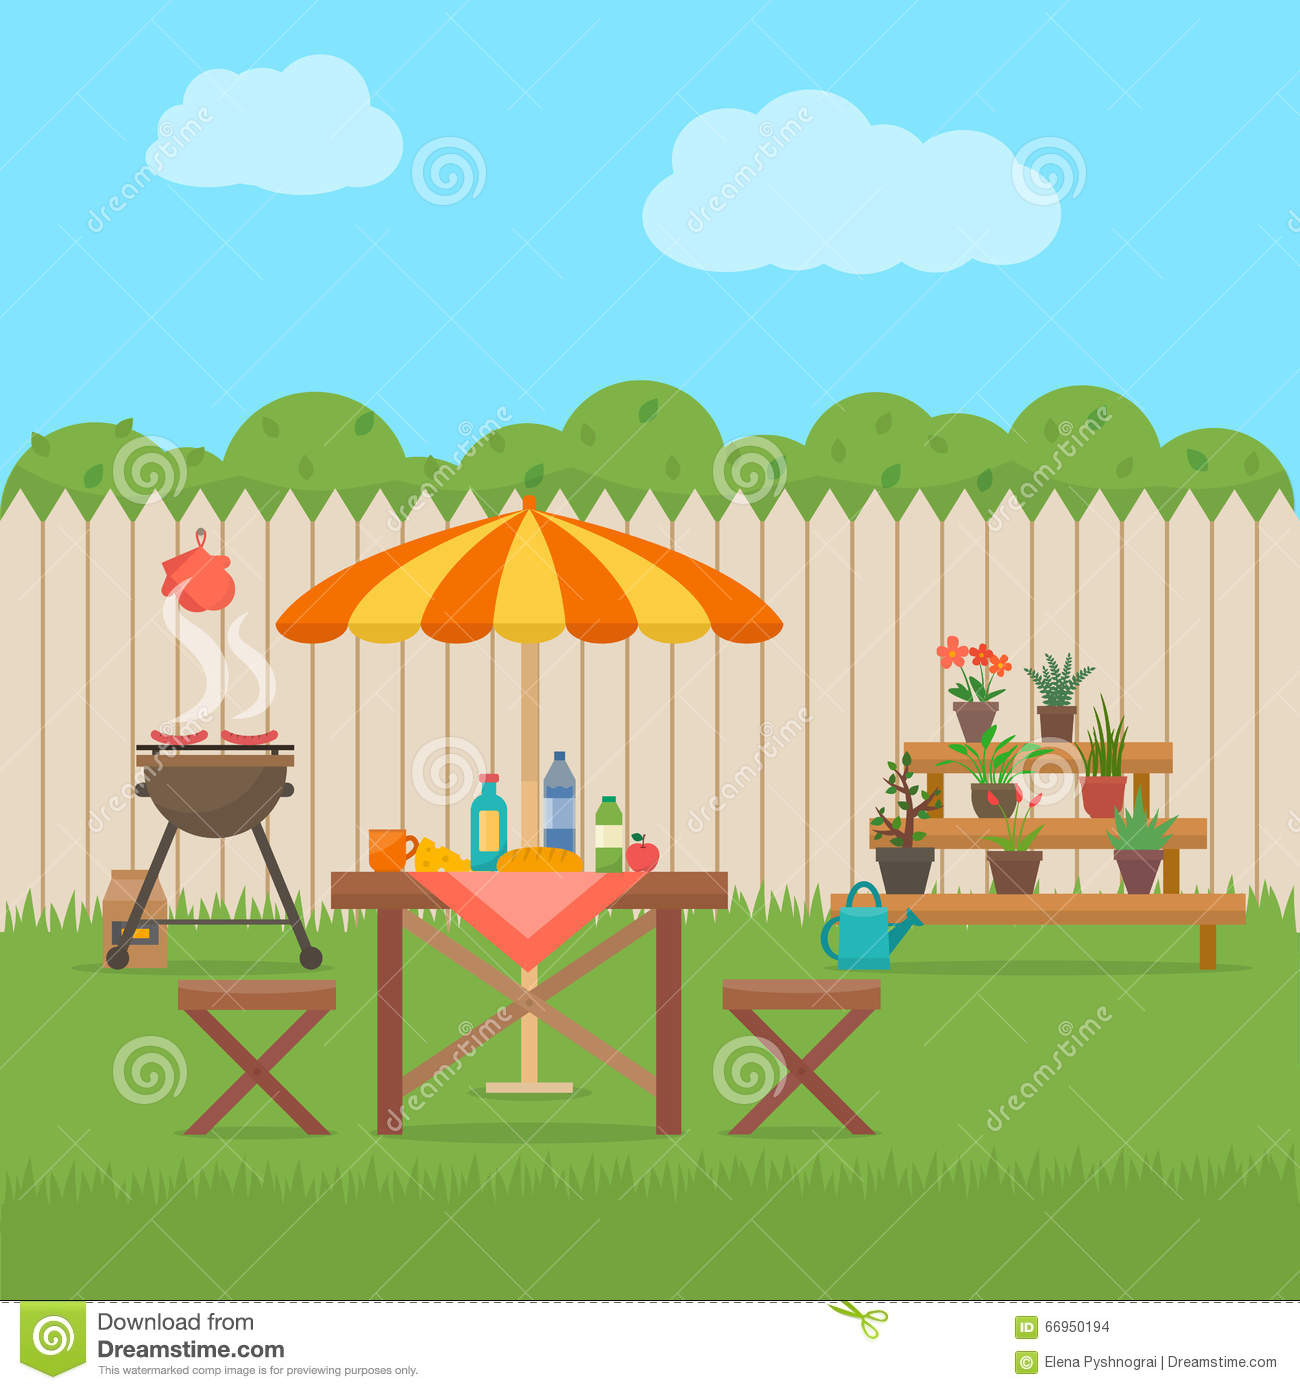 hight resolution of house backyard with grill outdoor picnic barbecue in patio flat style vector illustration